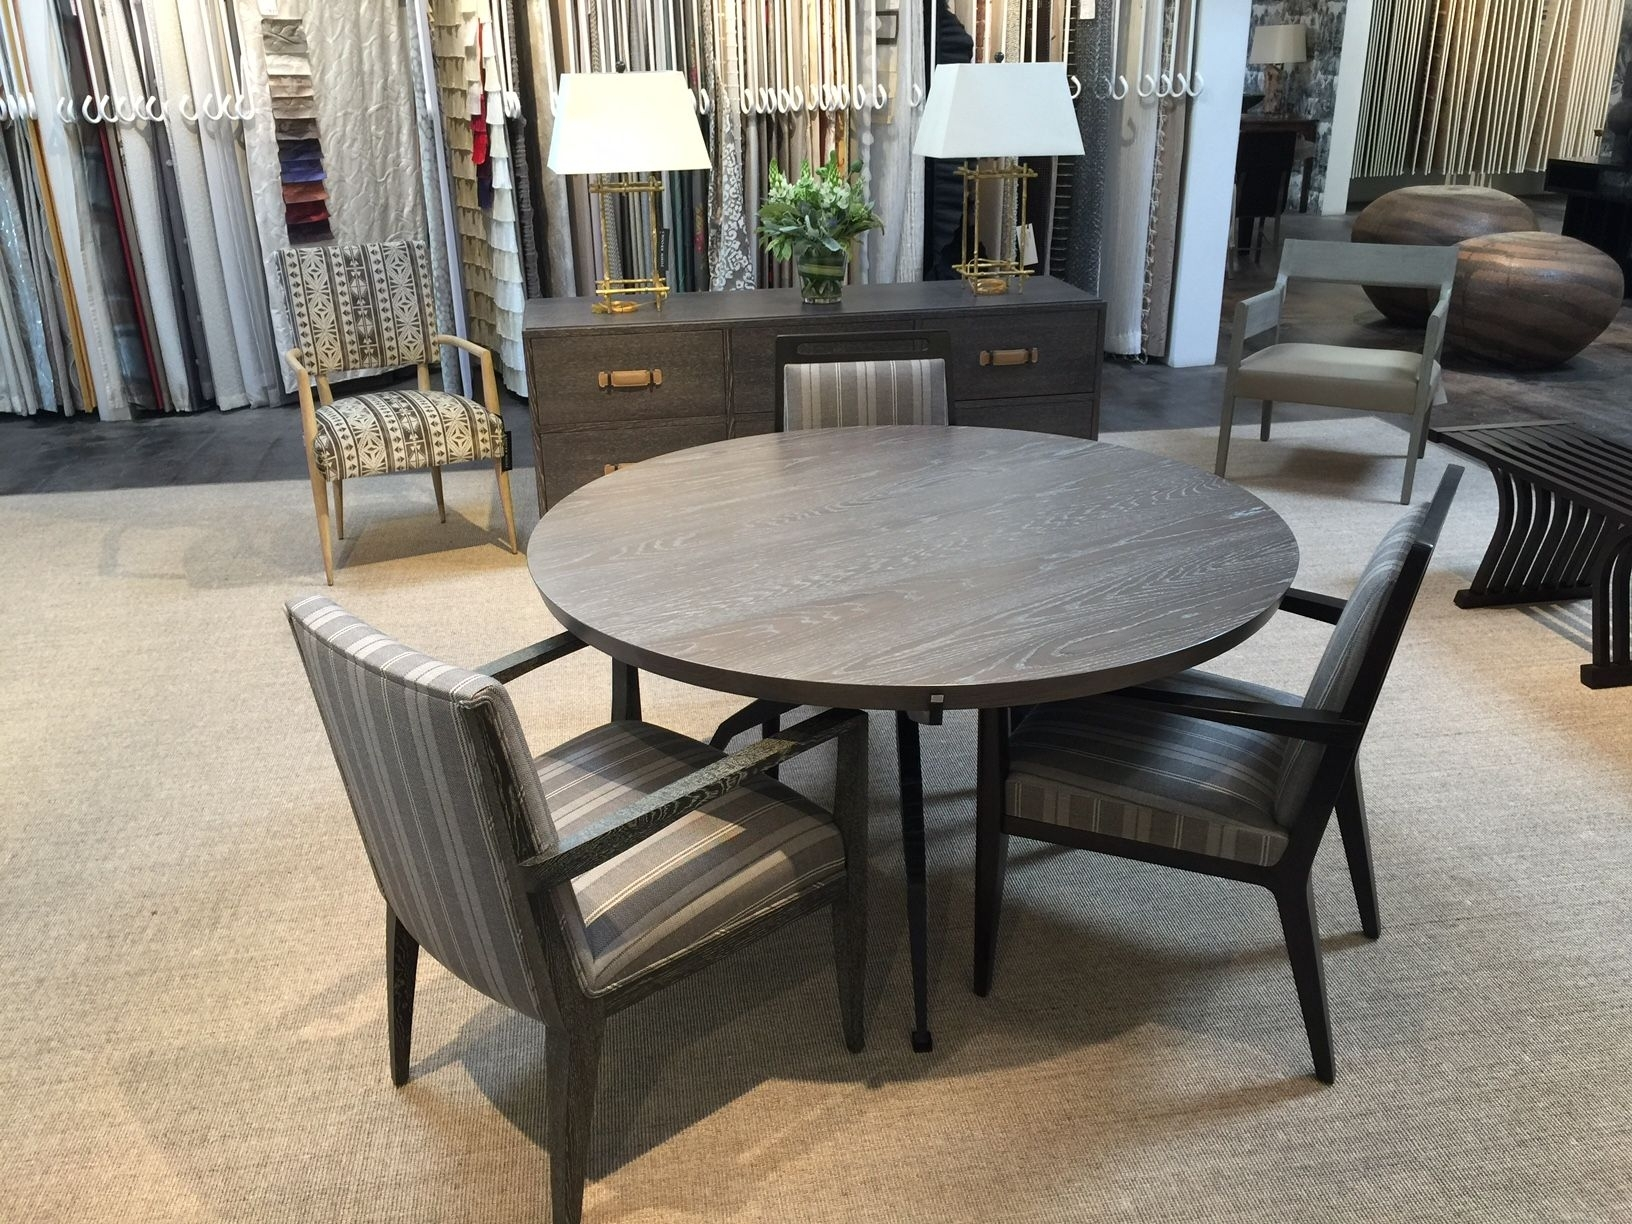 John Brooks – Scottsdale Showroom: Mattaliano Gallery Showcasing Throughout Newest Market 6 Piece Dining Sets With Side Chairs (Photo 9 of 20)